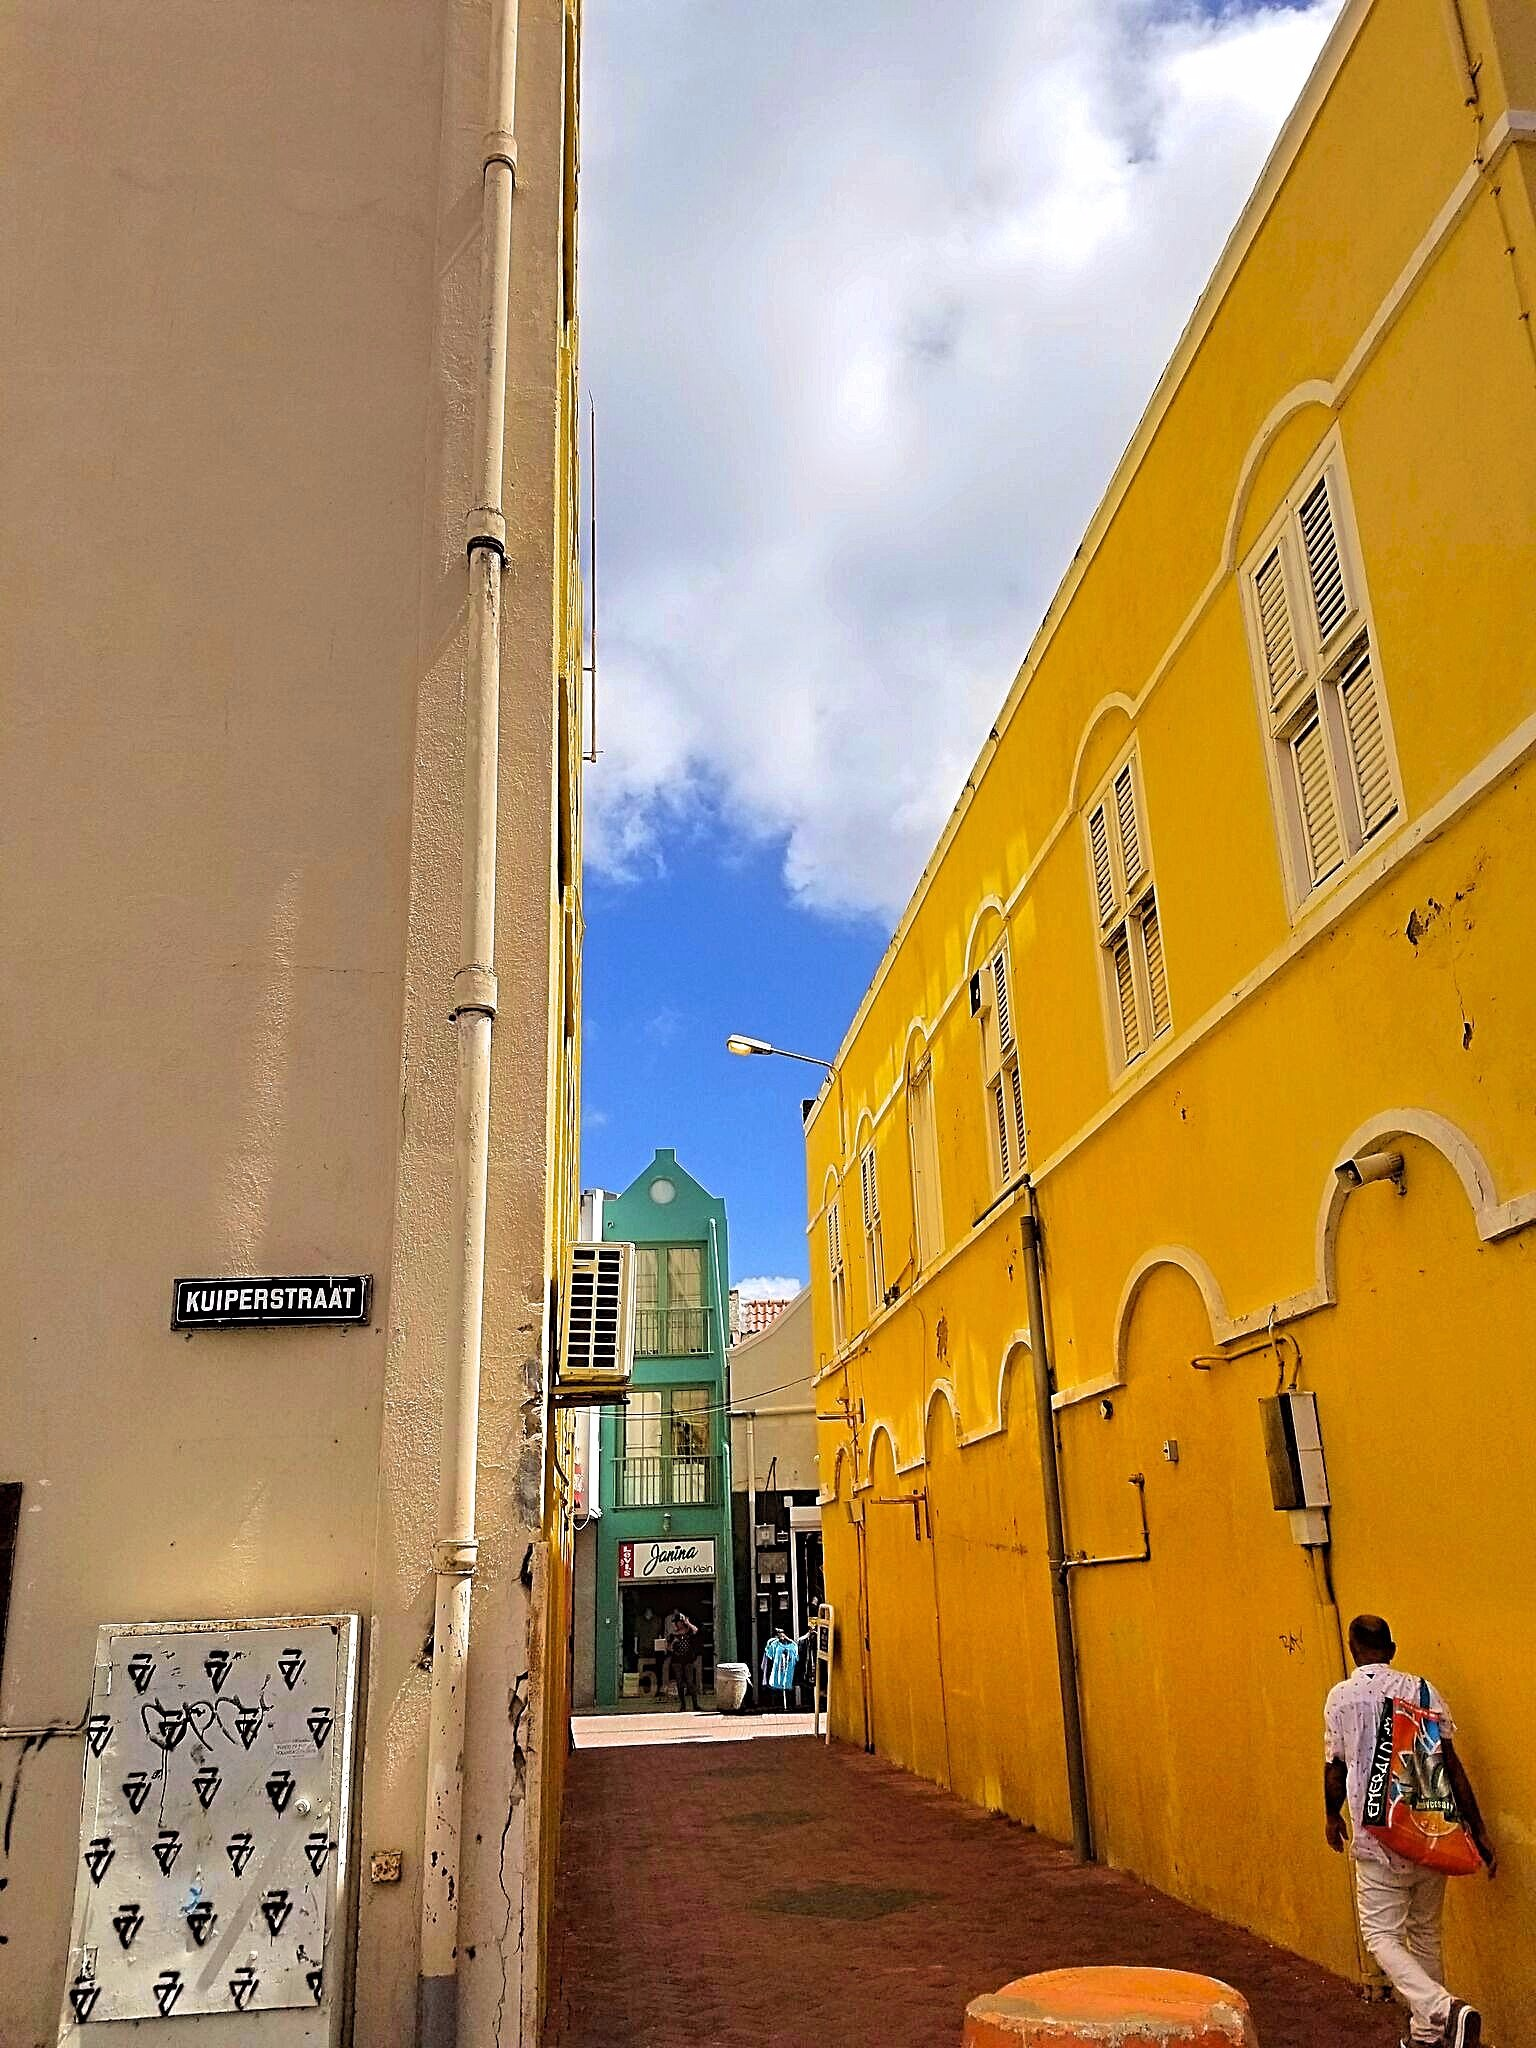 Streets_of_Curacao-edit